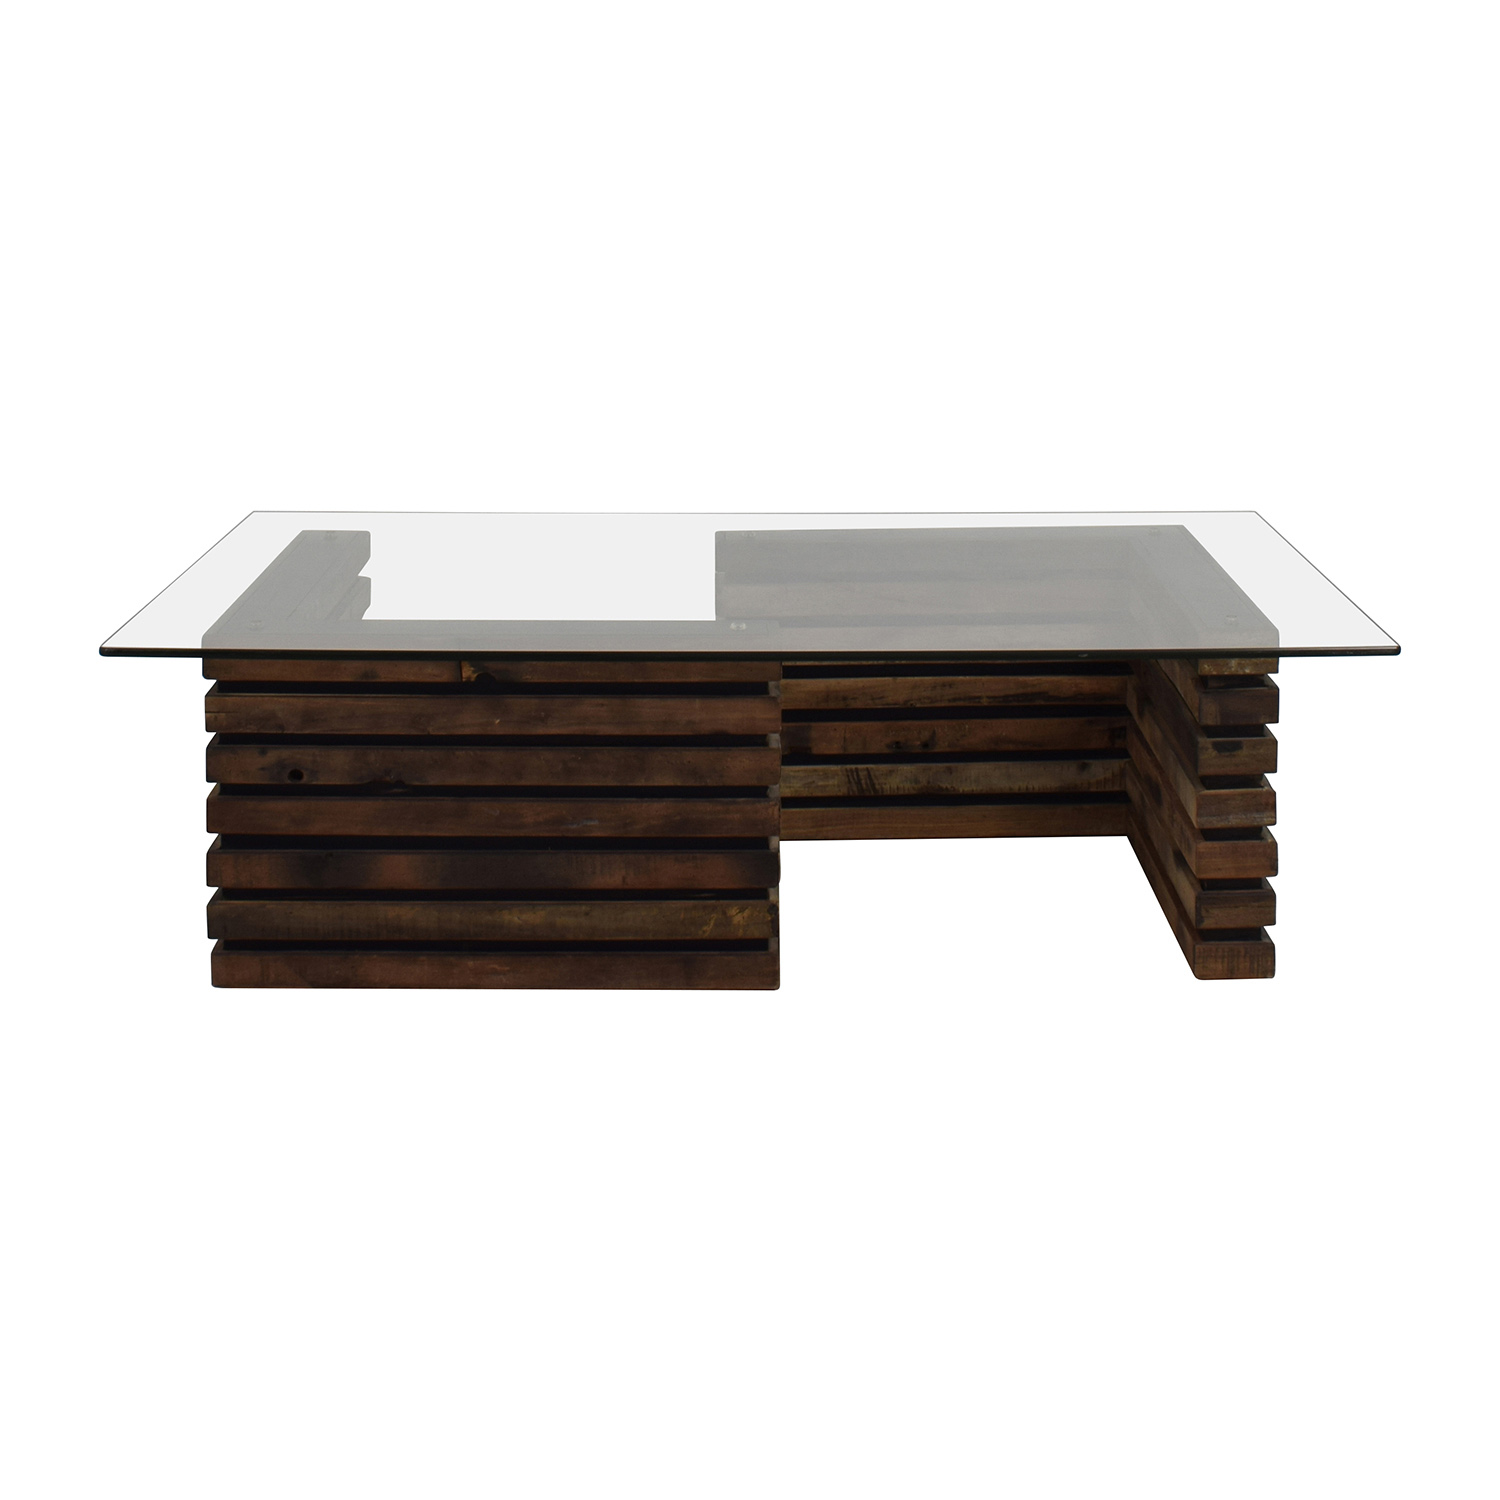 off  rustic industrial wood and glass coffee table  tables - rustic industrial wood and glass coffee table coffee tables